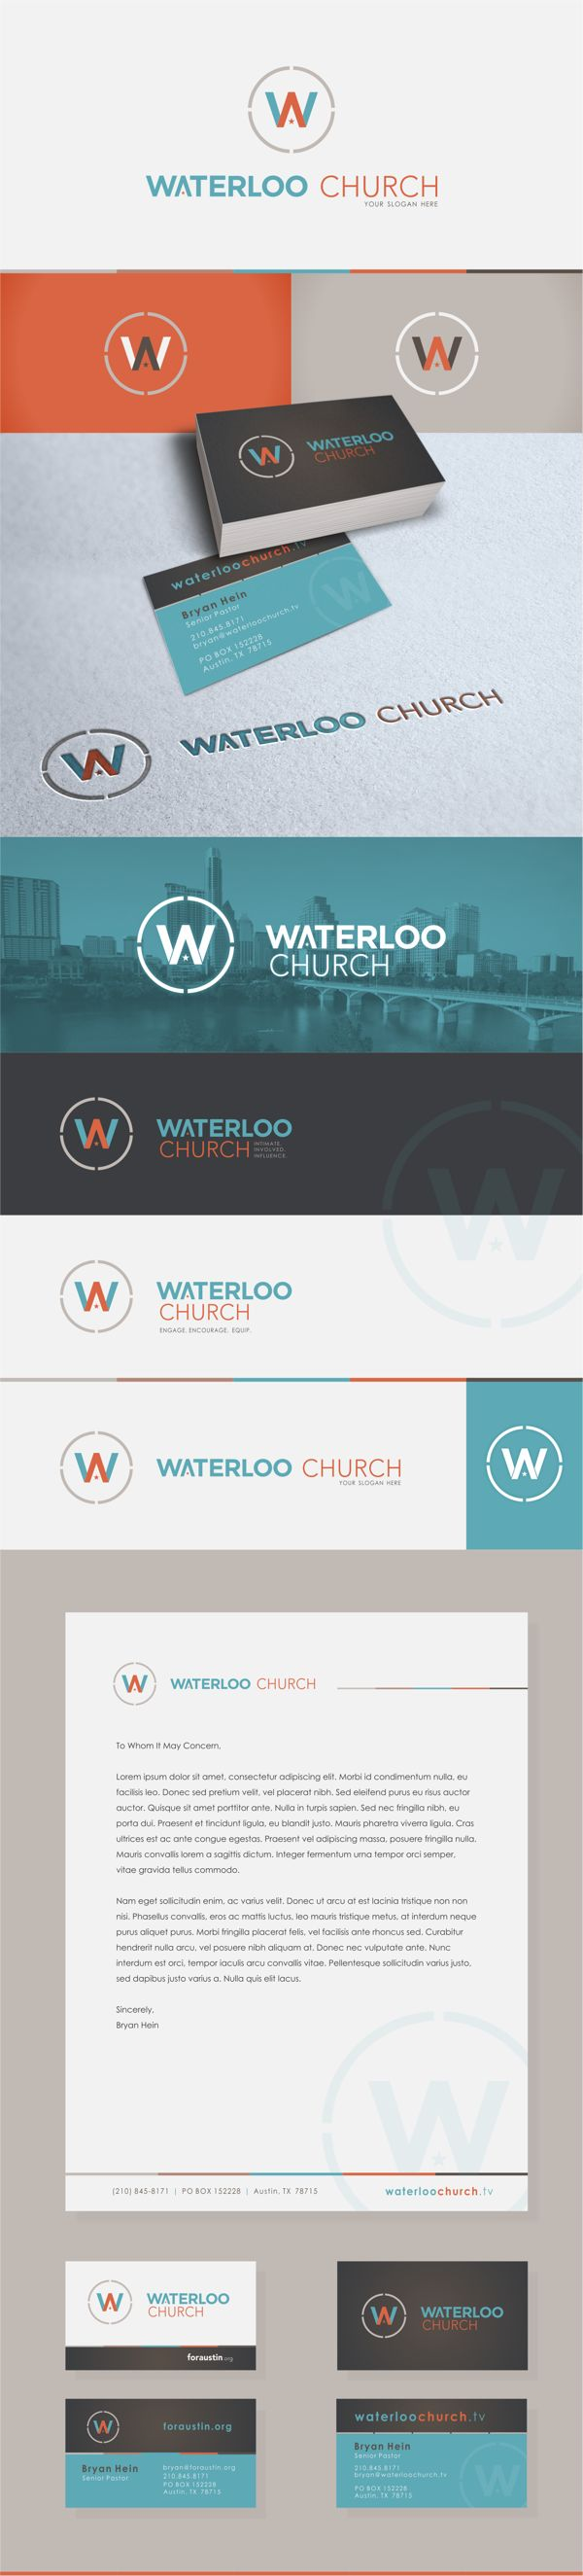 Waterloo Church - Logo & Identity Branding by Quincy Harriman, via Behance